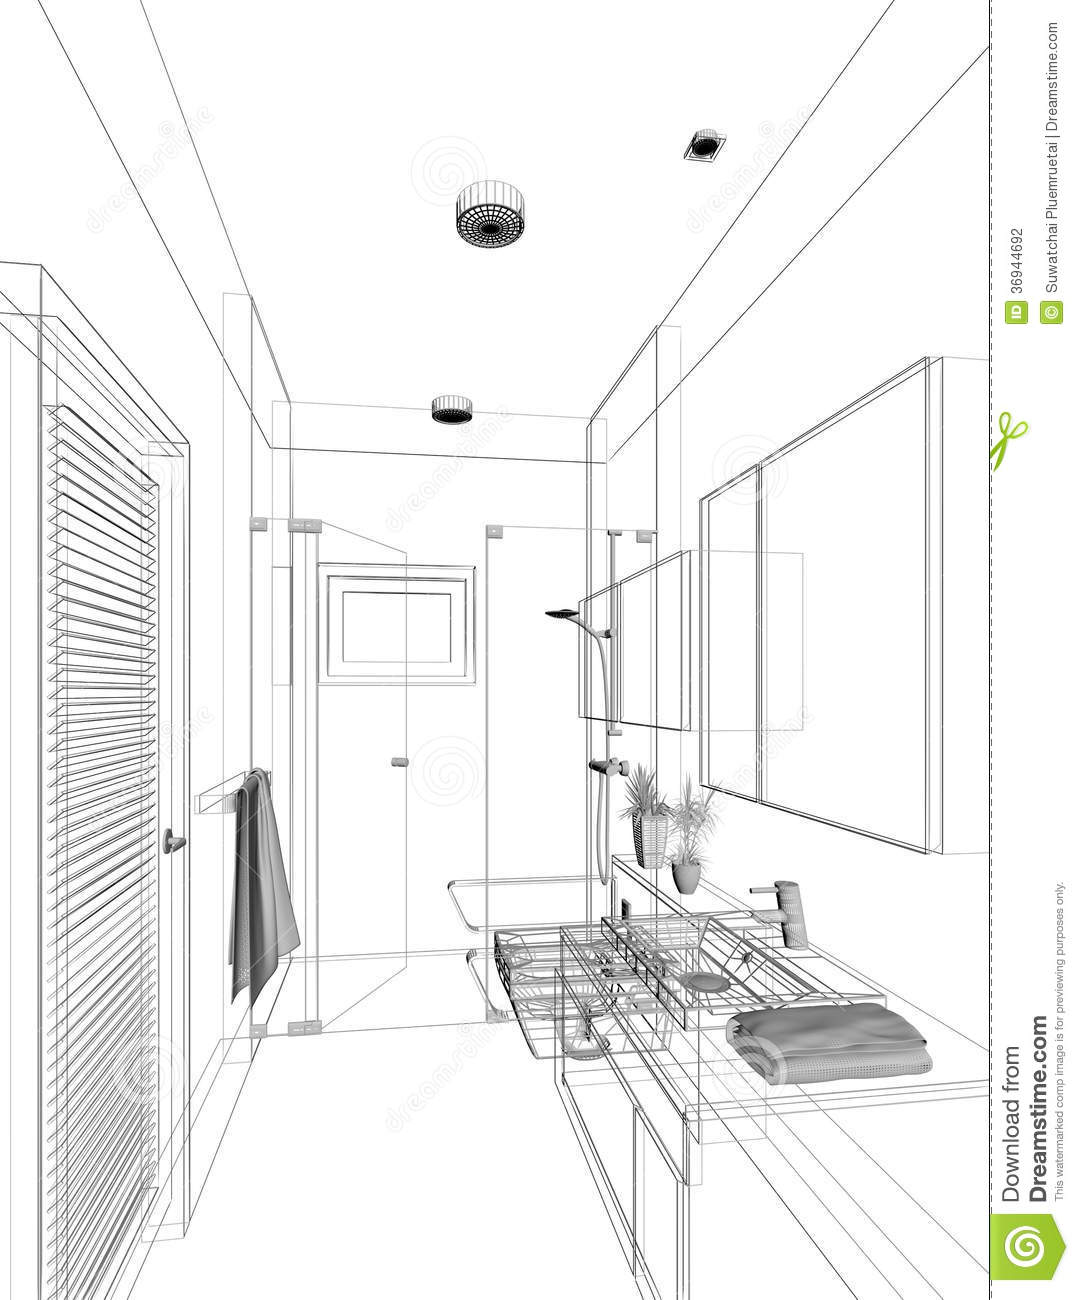 Sketch design of interior bathroom stock illustration for Bathroom designs drawing